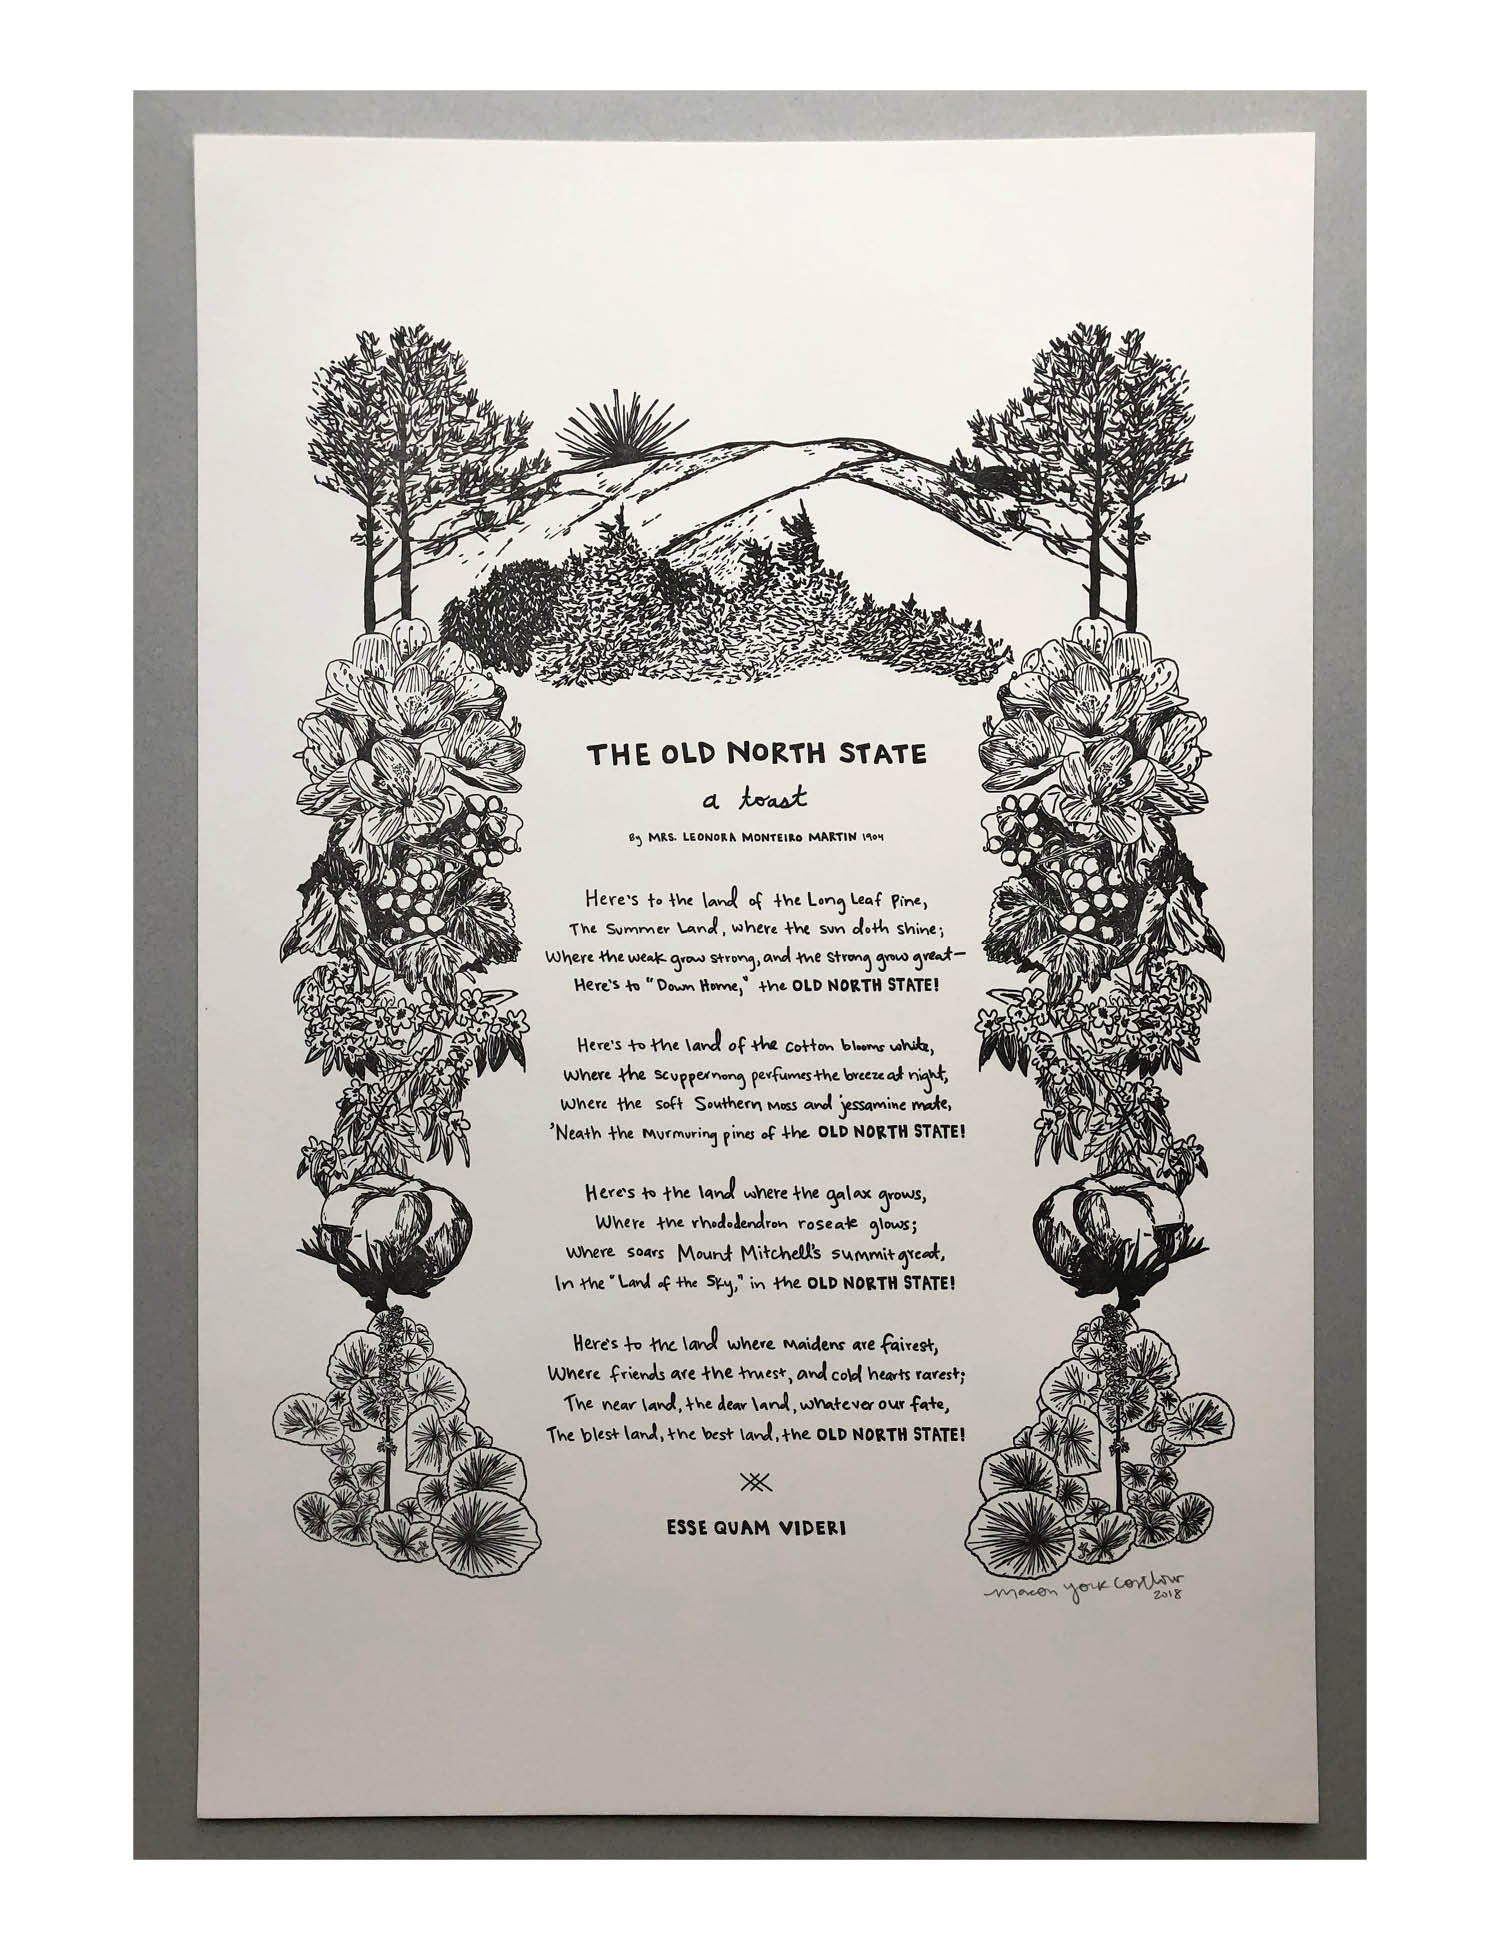 THE OLD NORTH STATE, A TOAST TO NORTH CAROLINA     This print features the North Carolina state toast. Each visual element from the poem is illustrated in the border: long leaf pine, rhododendron, scuppernong, jessamine, cotton, galax, and Mount Mitchell with the summer sun at the top!